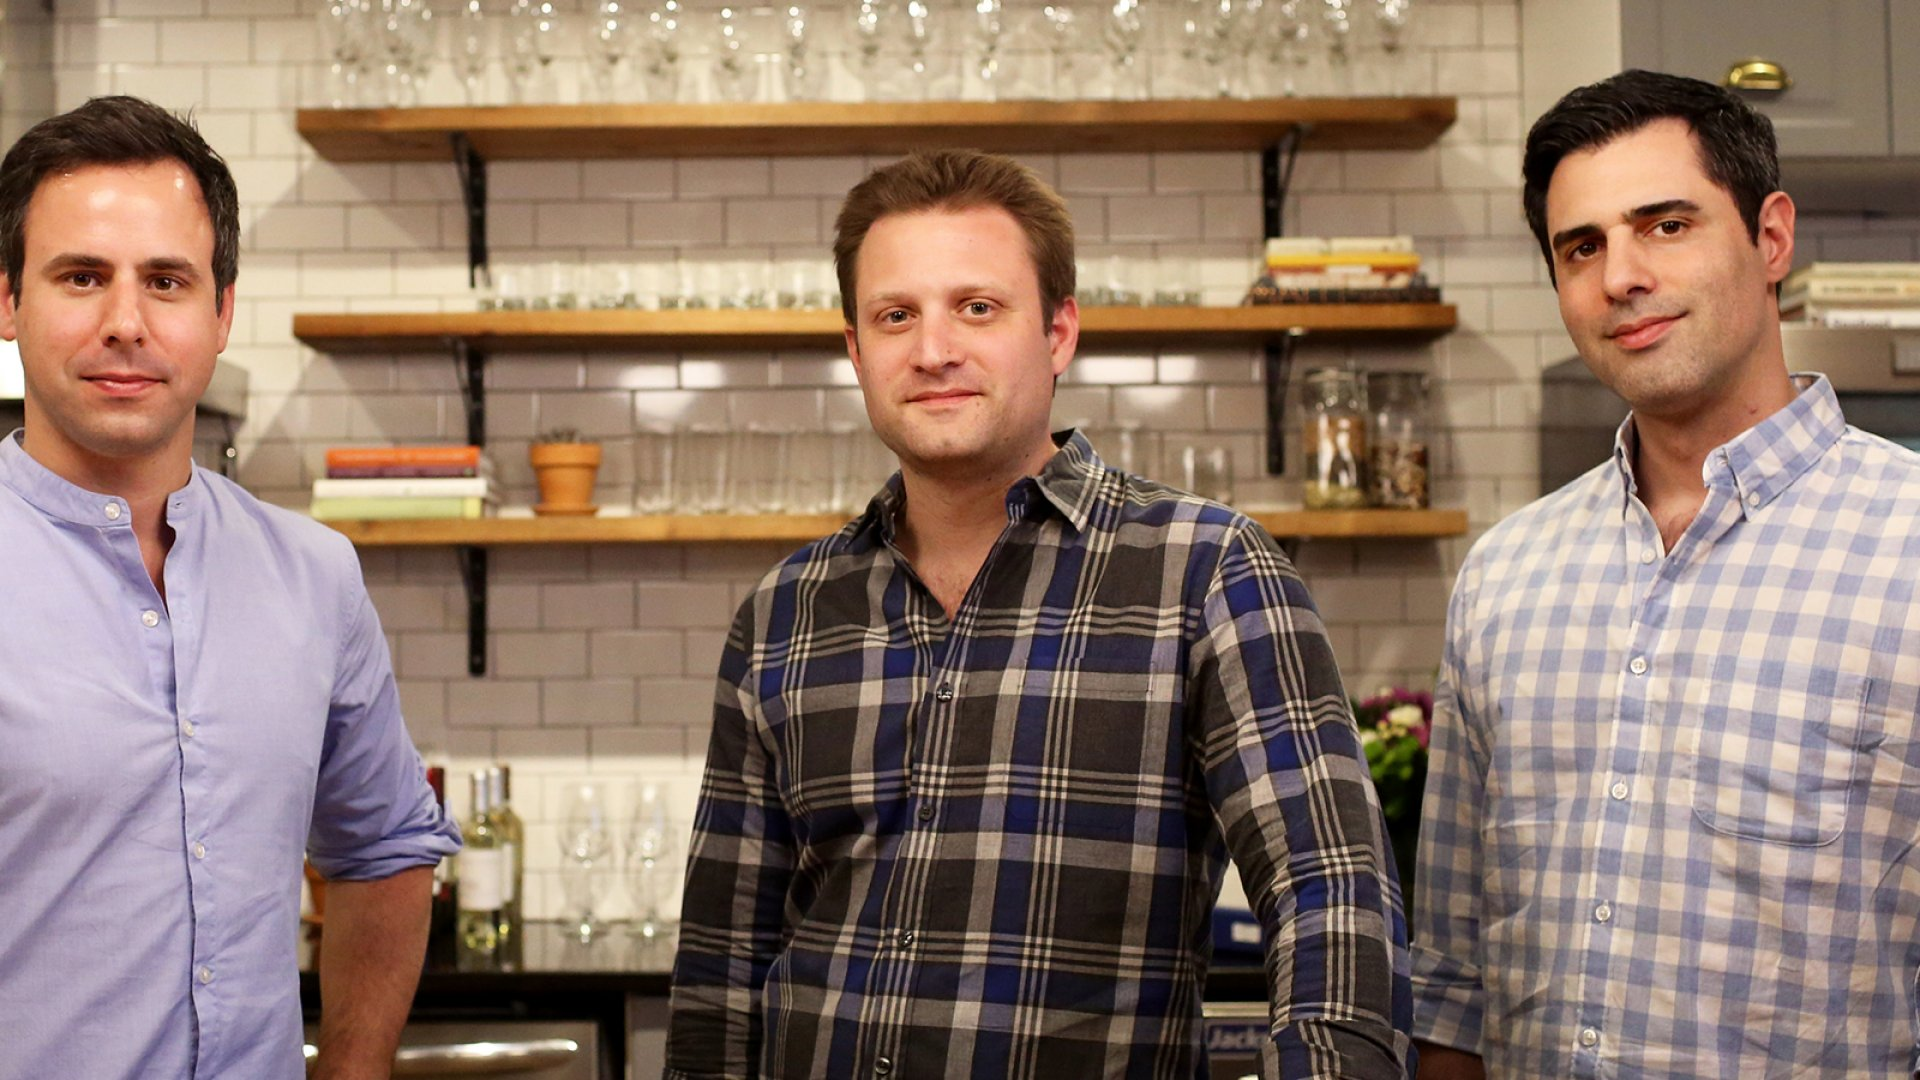 Blue Apron Files to Go Public, but Don't Expect It to Be Profitable Anytime Soon